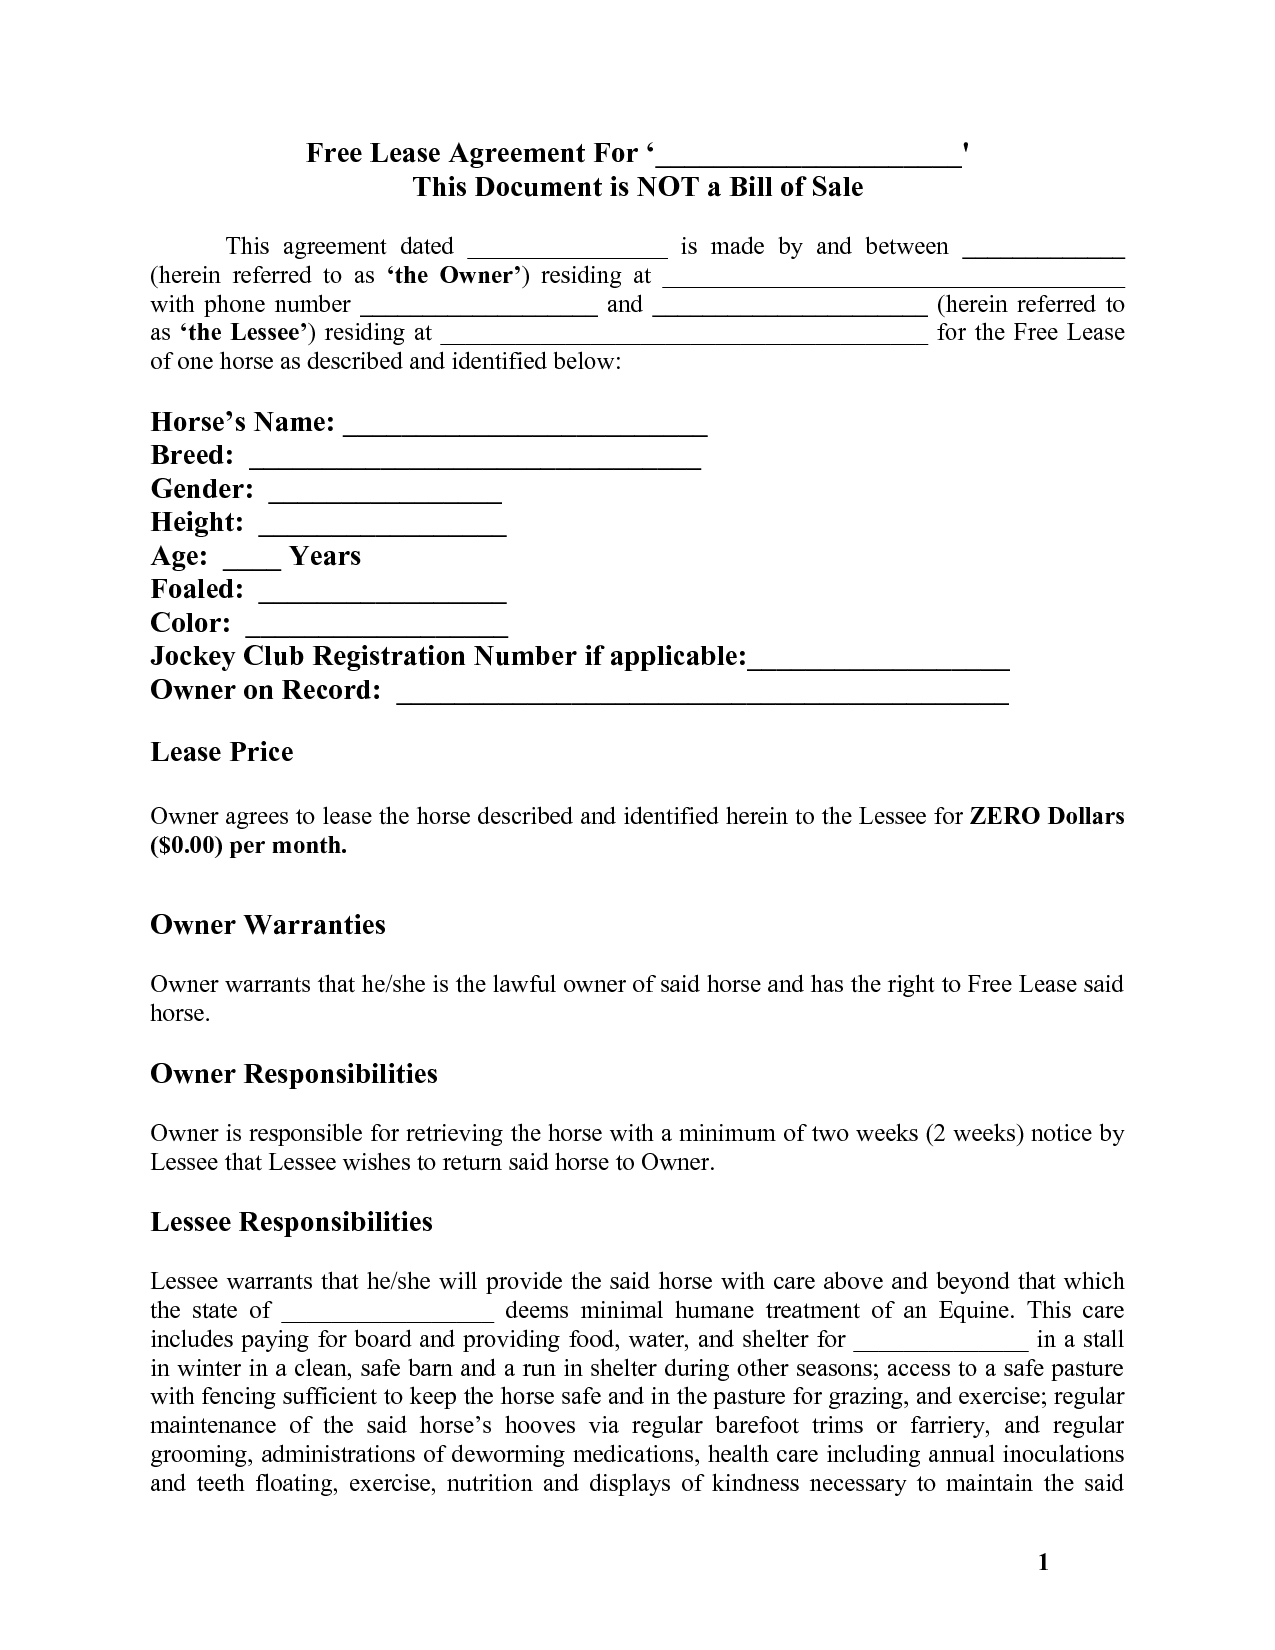 Horse Template Printable | Free Basic Lease Agreement | Country - Free Printable Basic Will